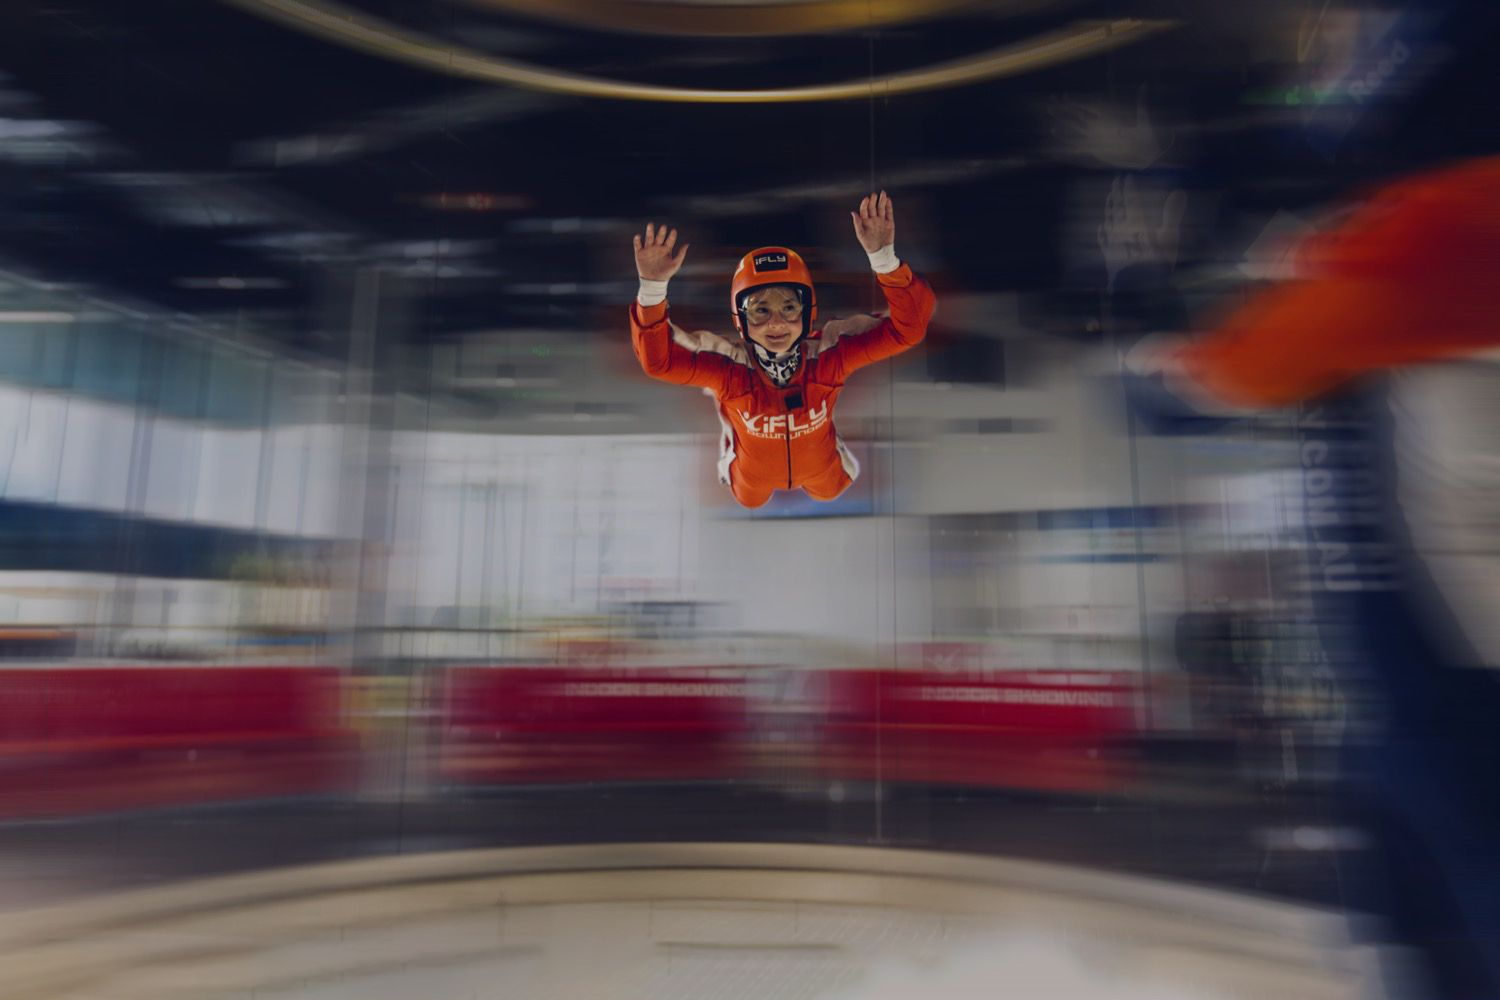 Child enjoying an indoor skydiving experience at iFly Downunder, Penrith in Sydney's Western Suburbs